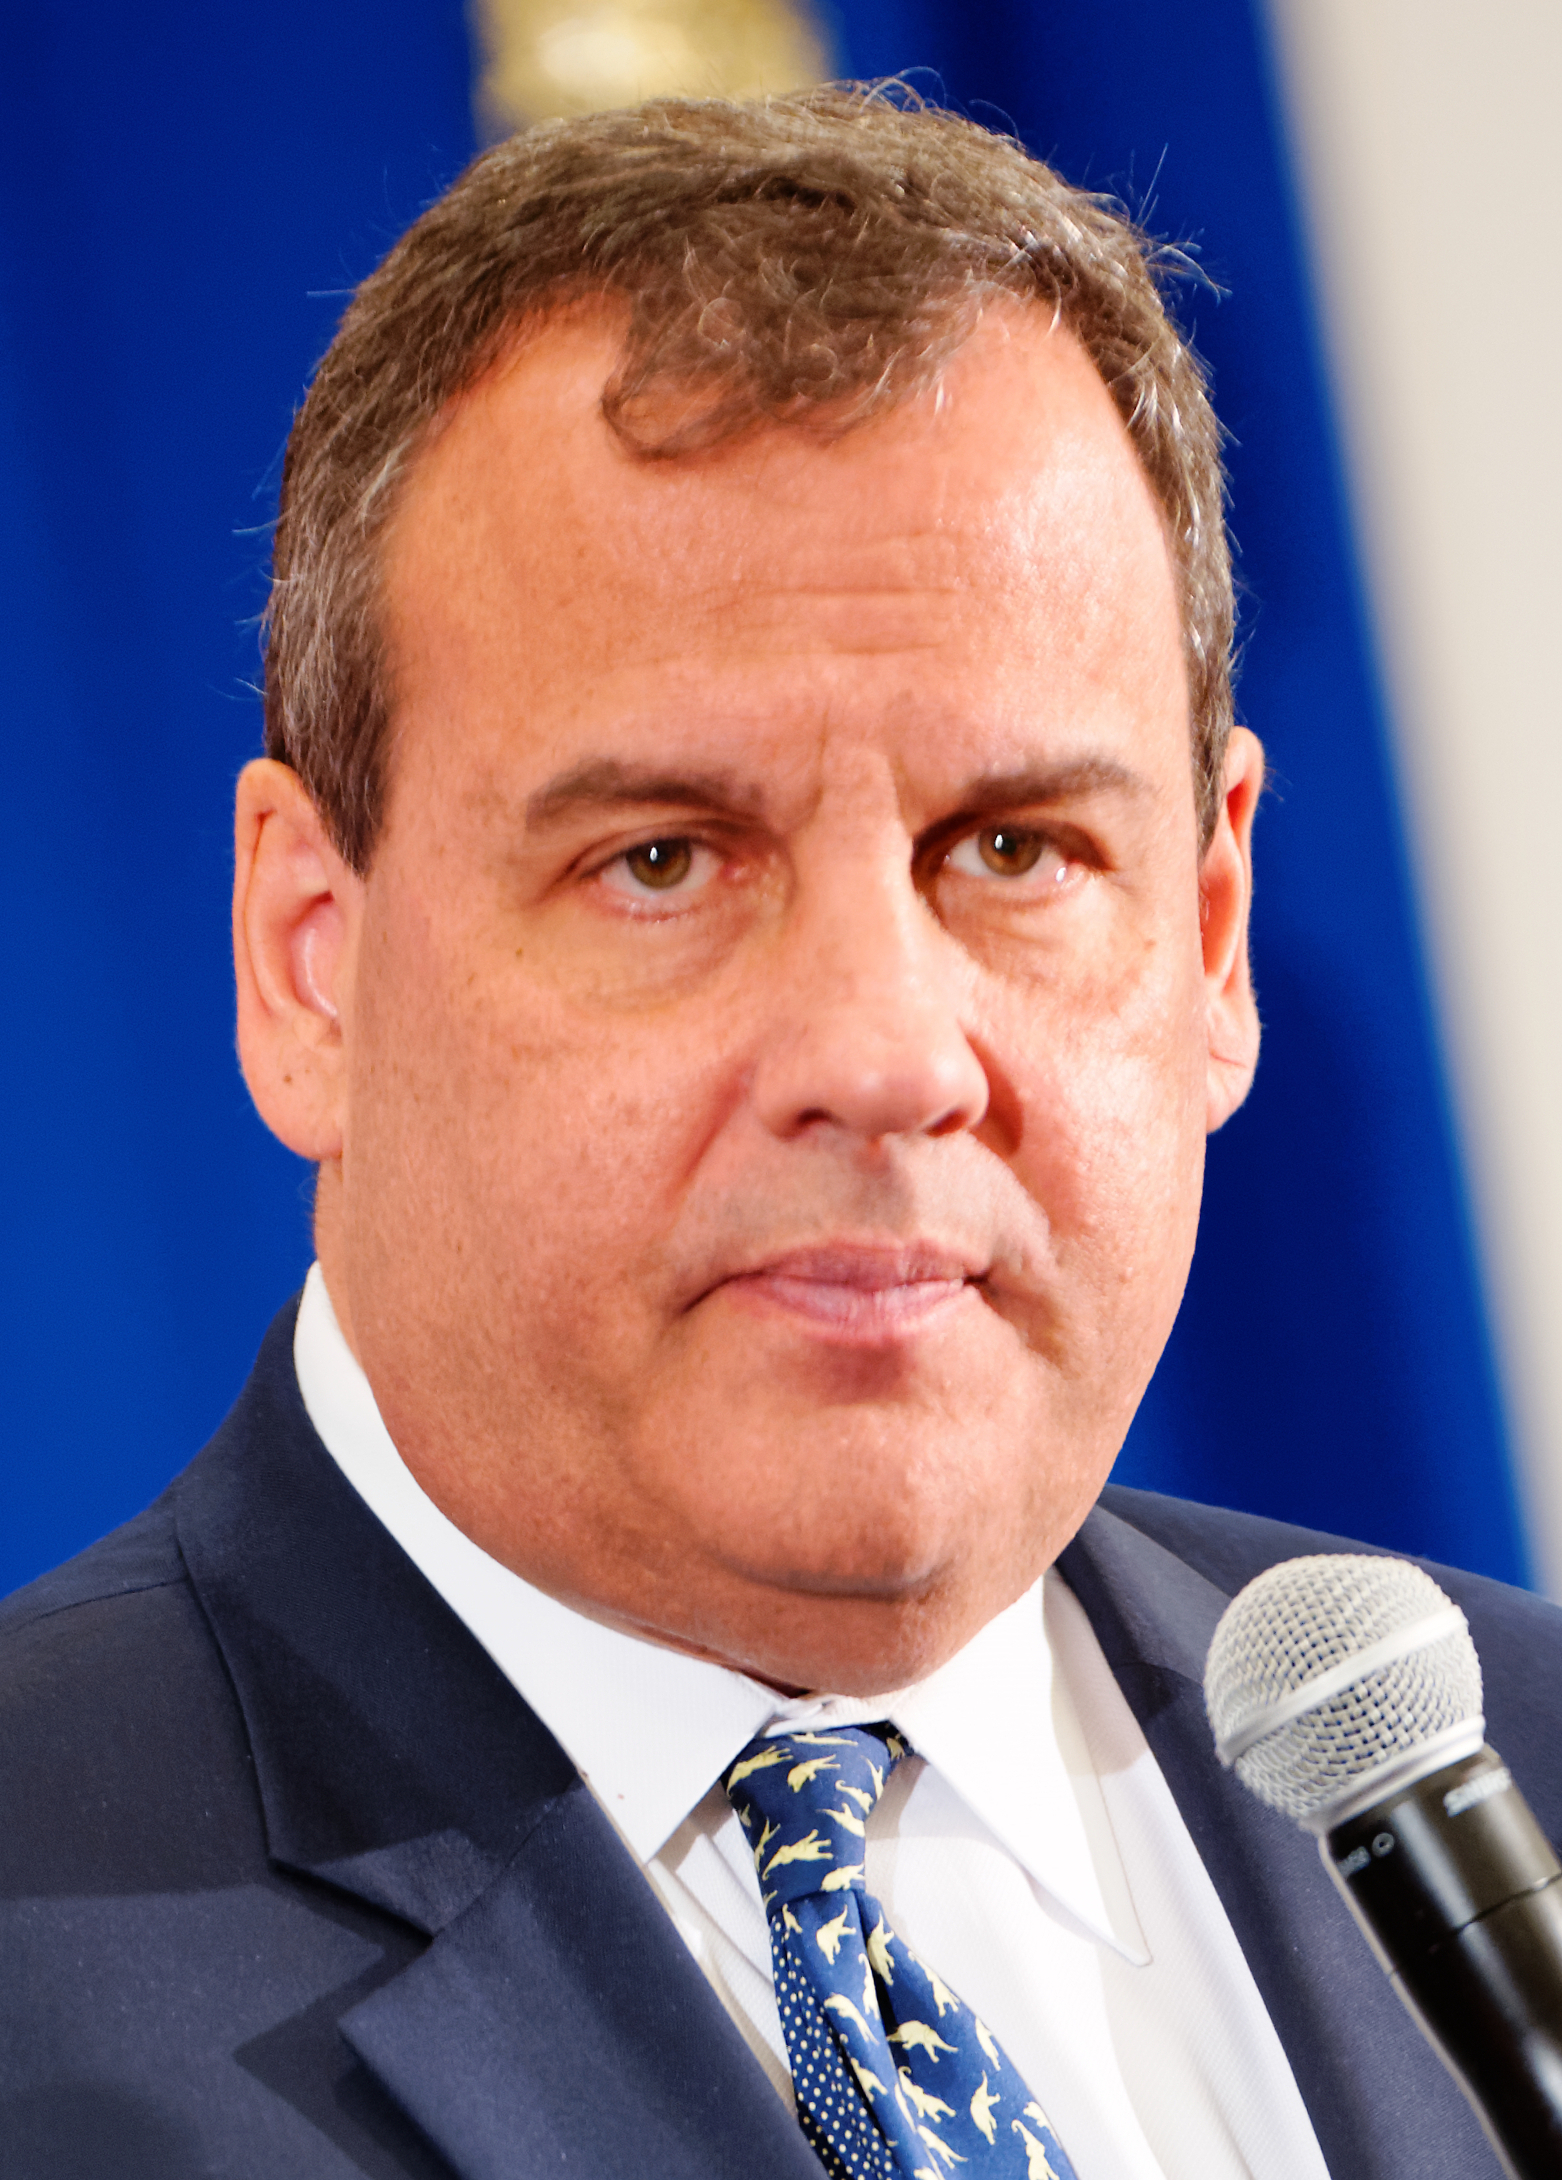 The 55-year old son of father Wilbur Christie and mother Sondra Grasso Chris Christie in 2018 photo. Chris Christie earned a 0.7 million dollar salary - leaving the net worth at 5 million in 2018